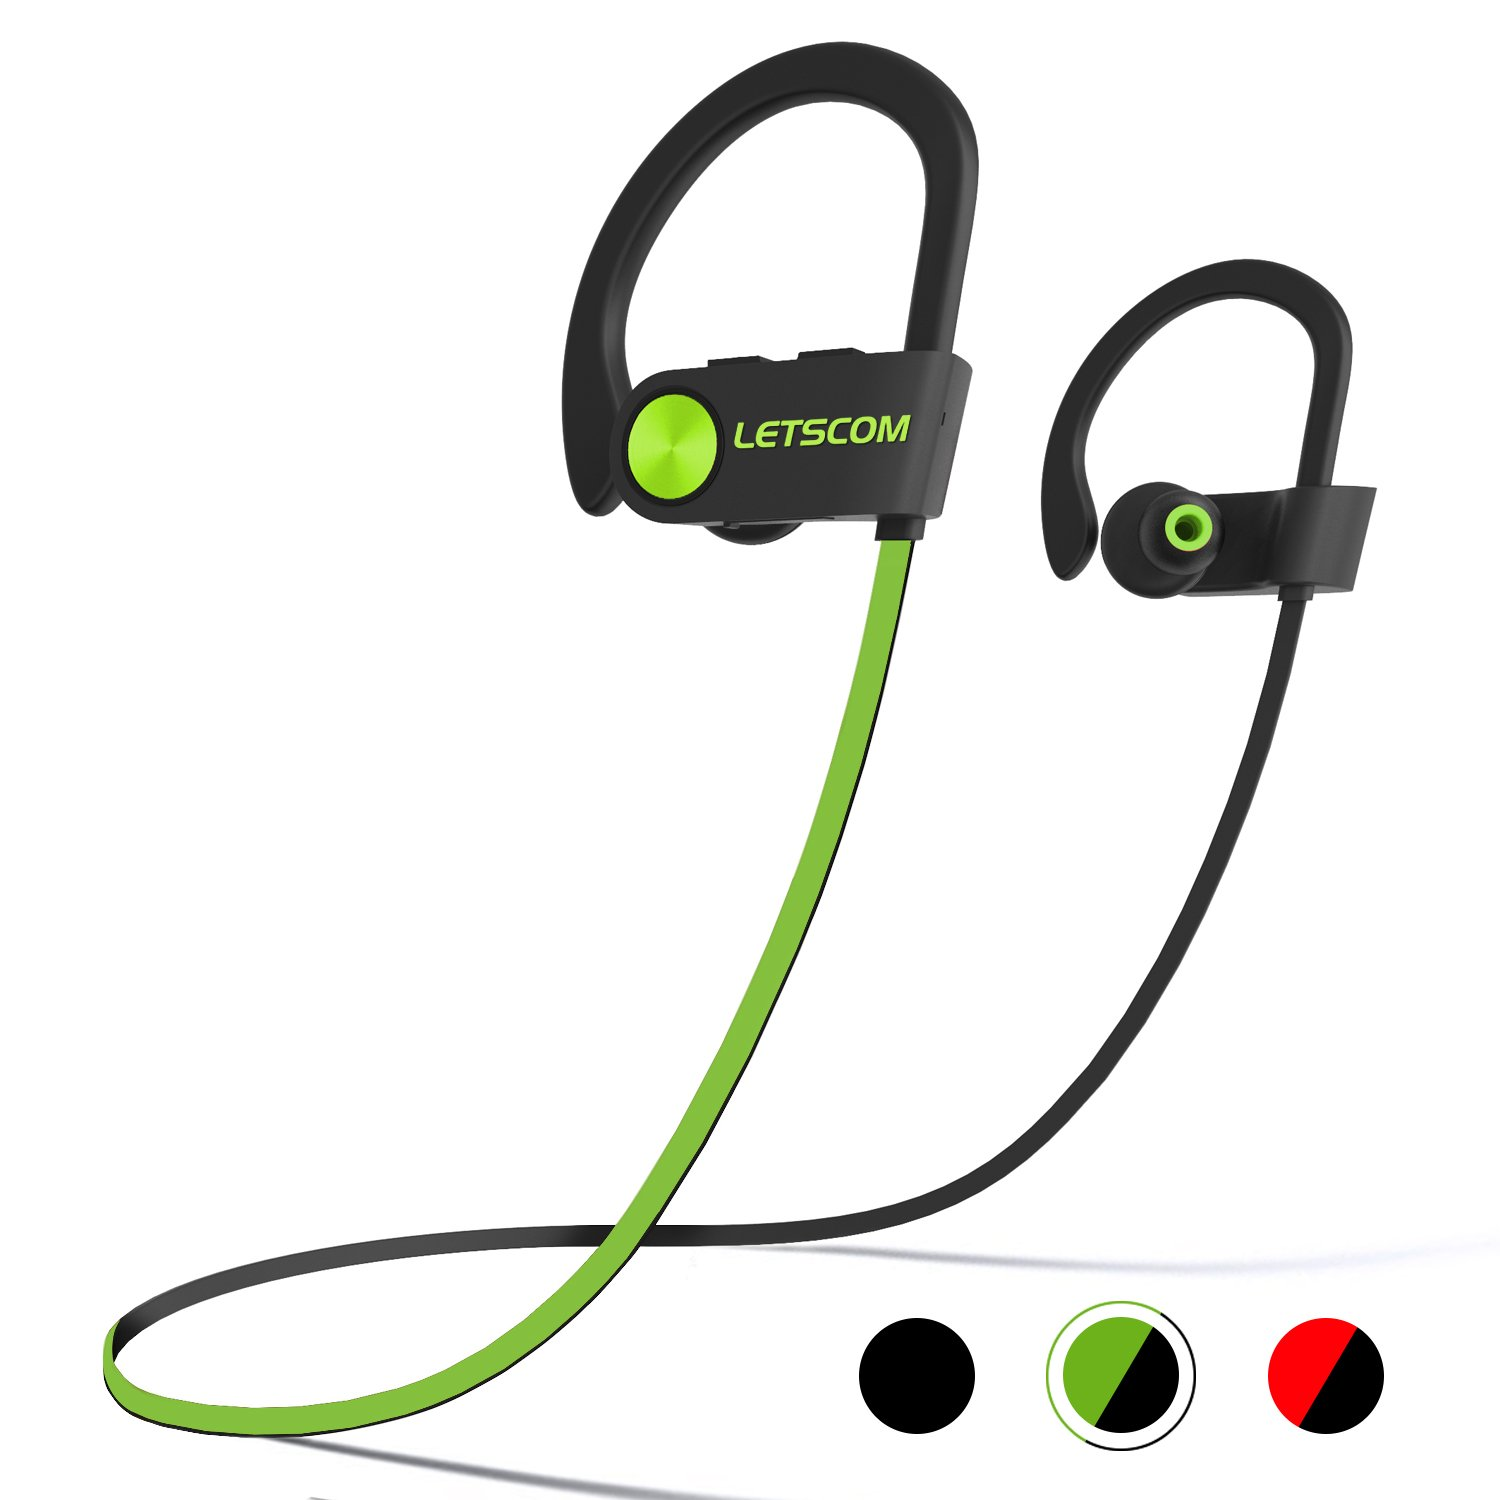 LETSCOM Headphones IPX7 Waterproof, Wireless Sport Earphones HiFi Bass Stereo Sweatproof Earbuds w/Mic, Noise Cancelling Headset for Workout, Running, Gym, 8 Hours Play Time